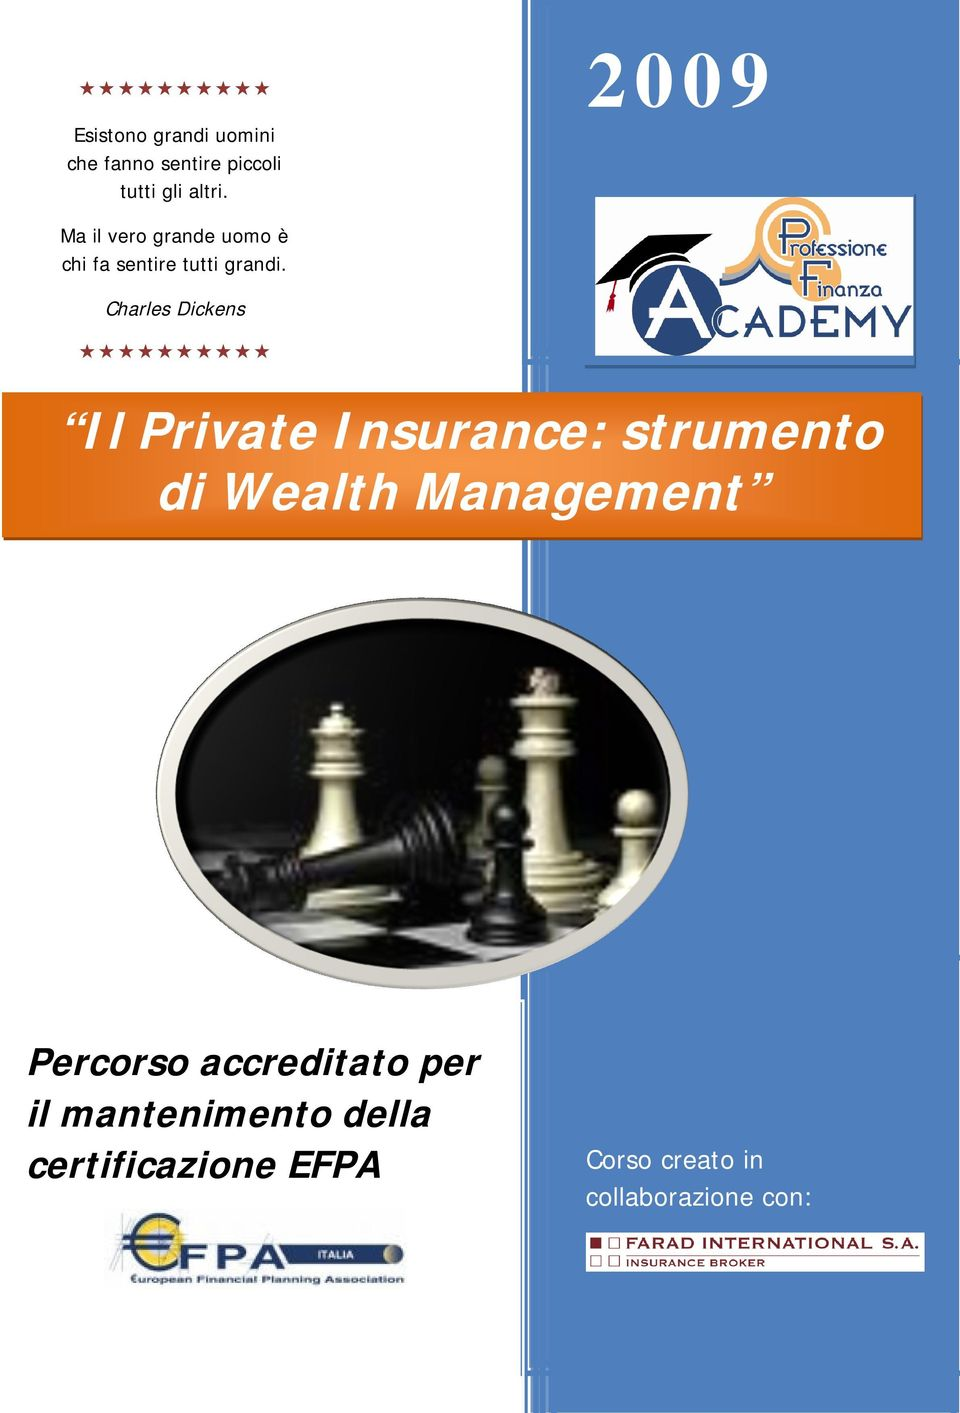 Charles Dickens Il Private Insurance: strumento di Wealth Management